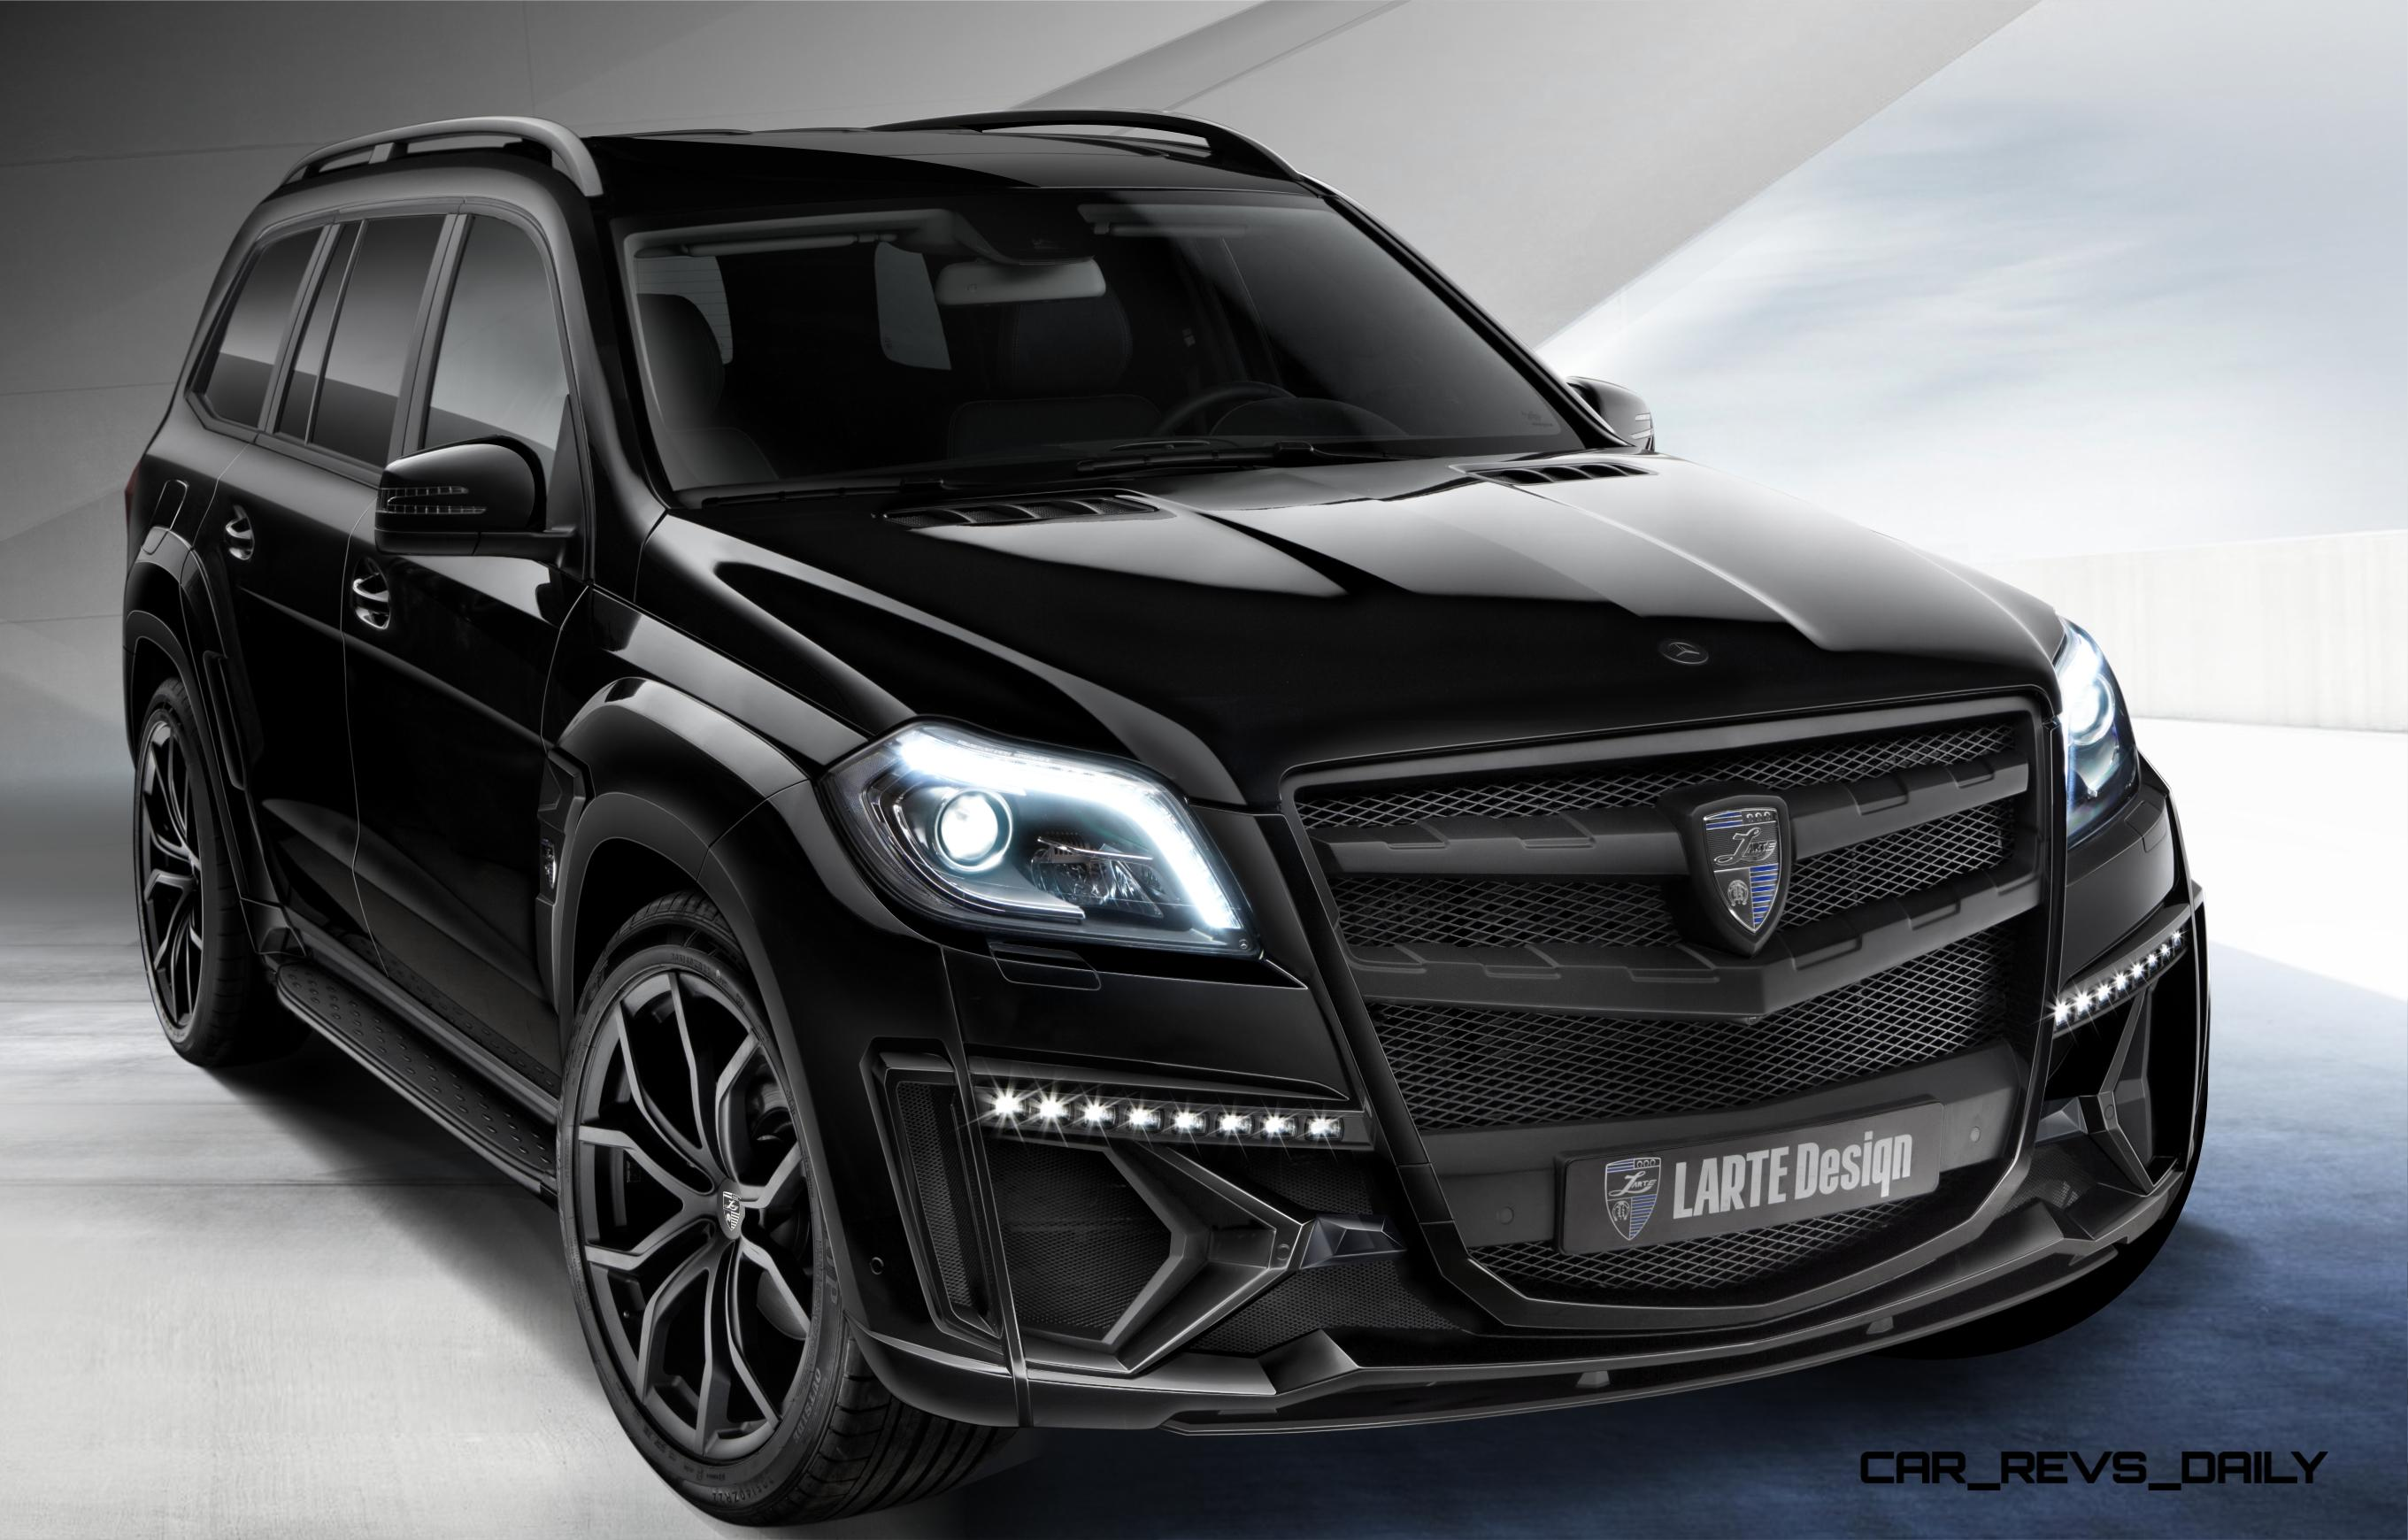 LARTE Design for Mercedes-Benz GL-Class Might Be Their Best Work Yet 43